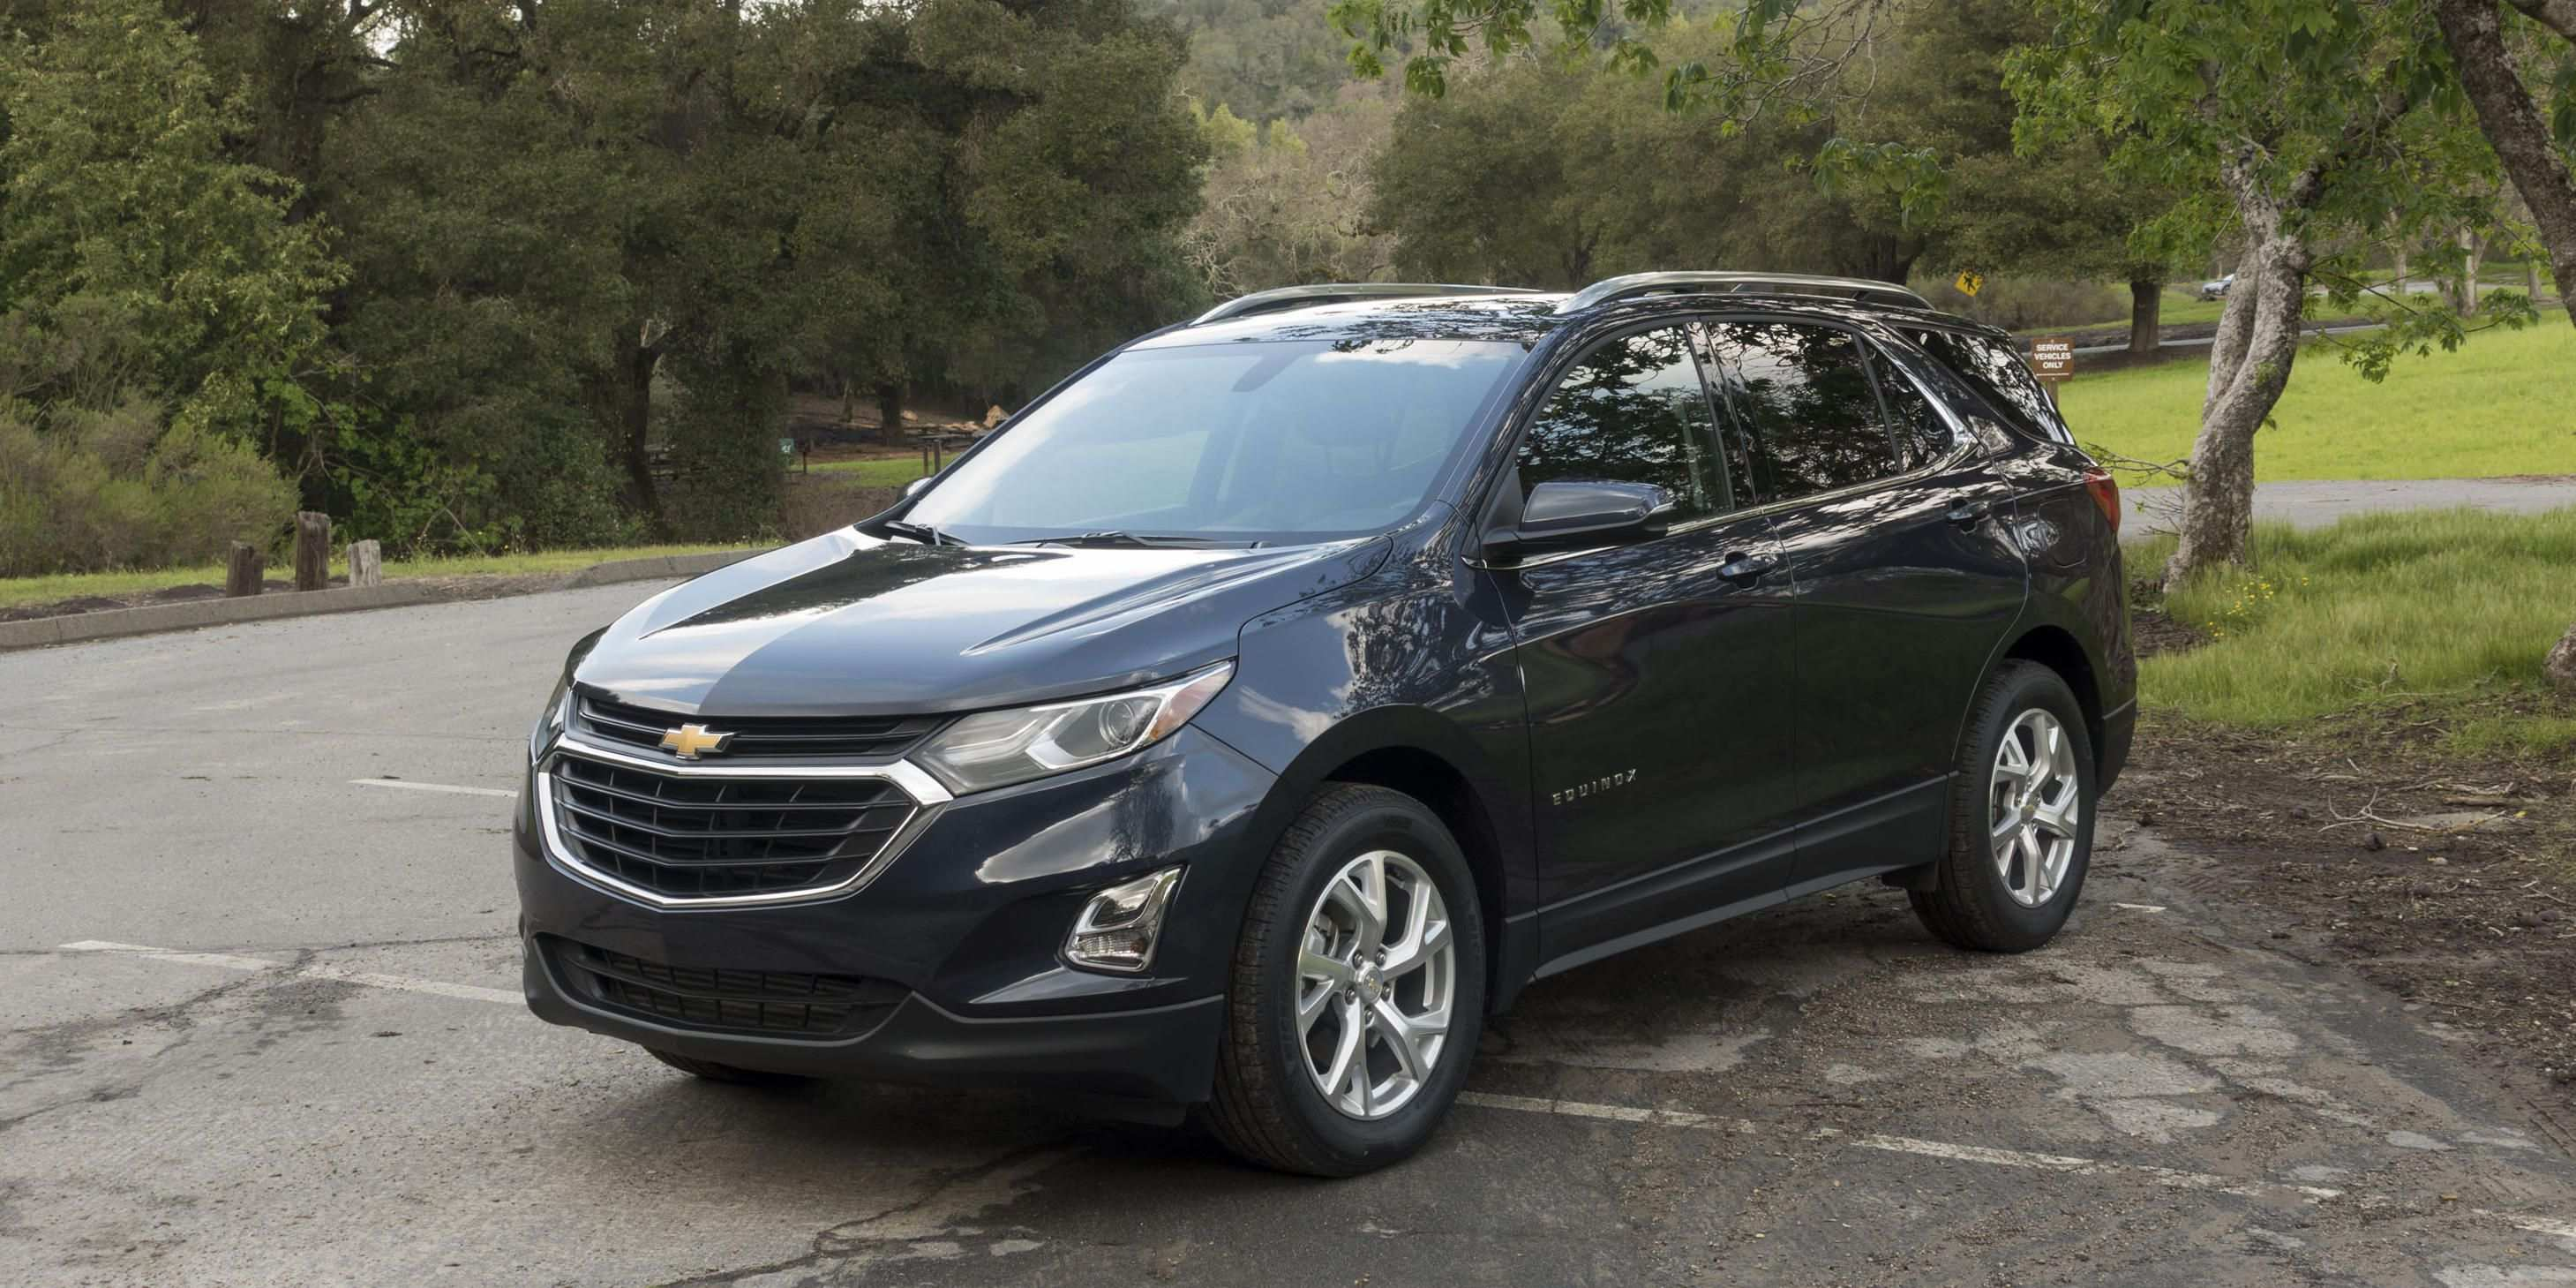 52 All New 2019 Chevrolet Equinox Price and Review for 2019 Chevrolet Equinox